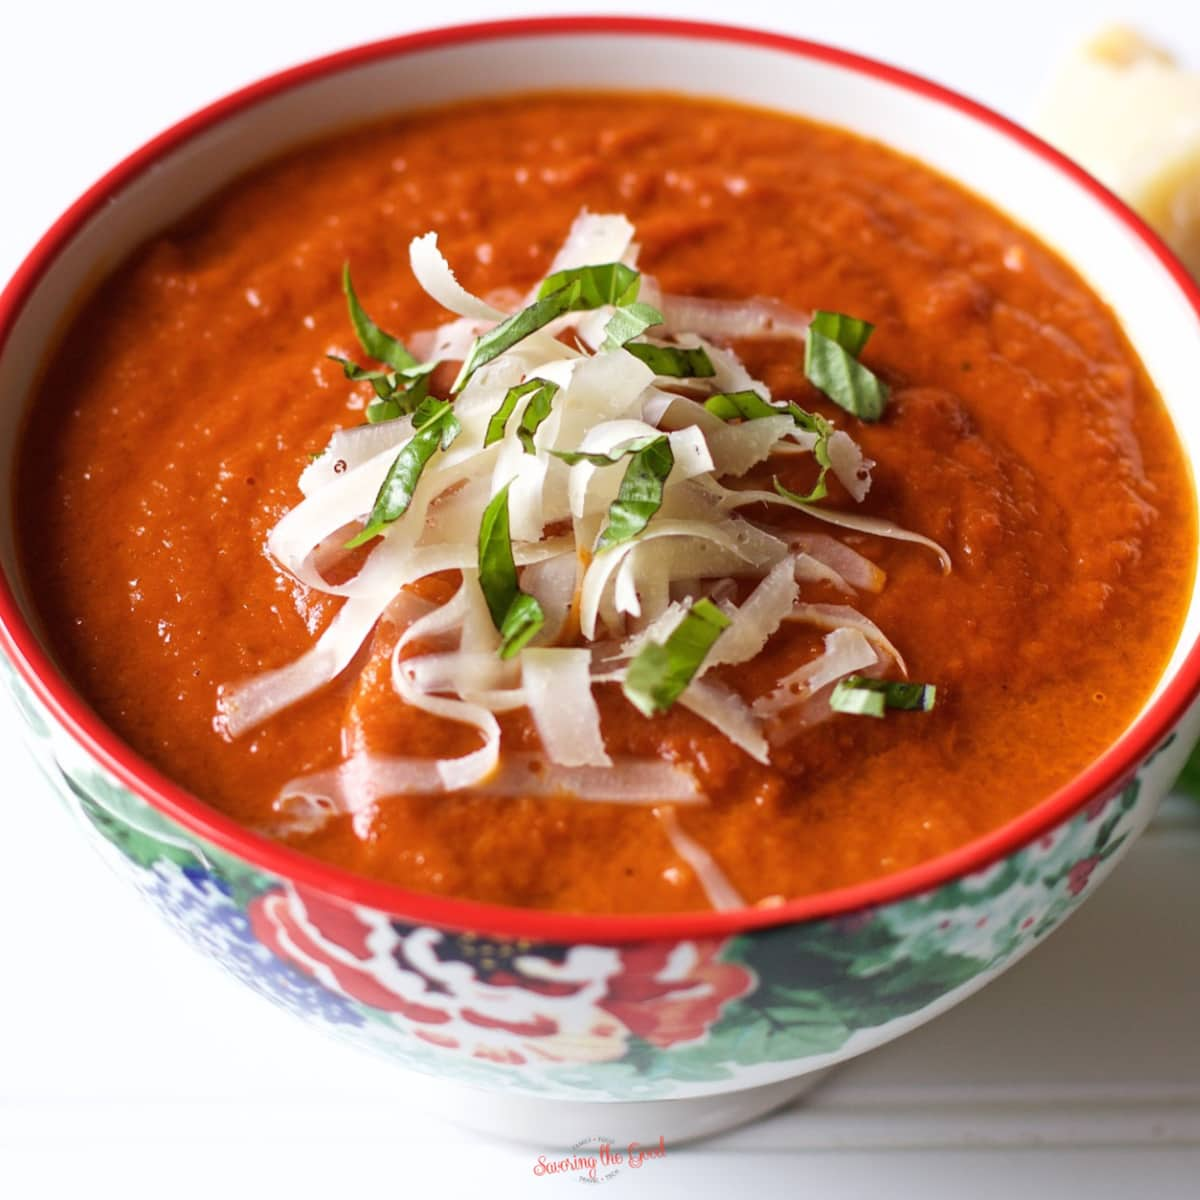 oven roasted tomato soup in a bowl with cheese and basil garnish, square image